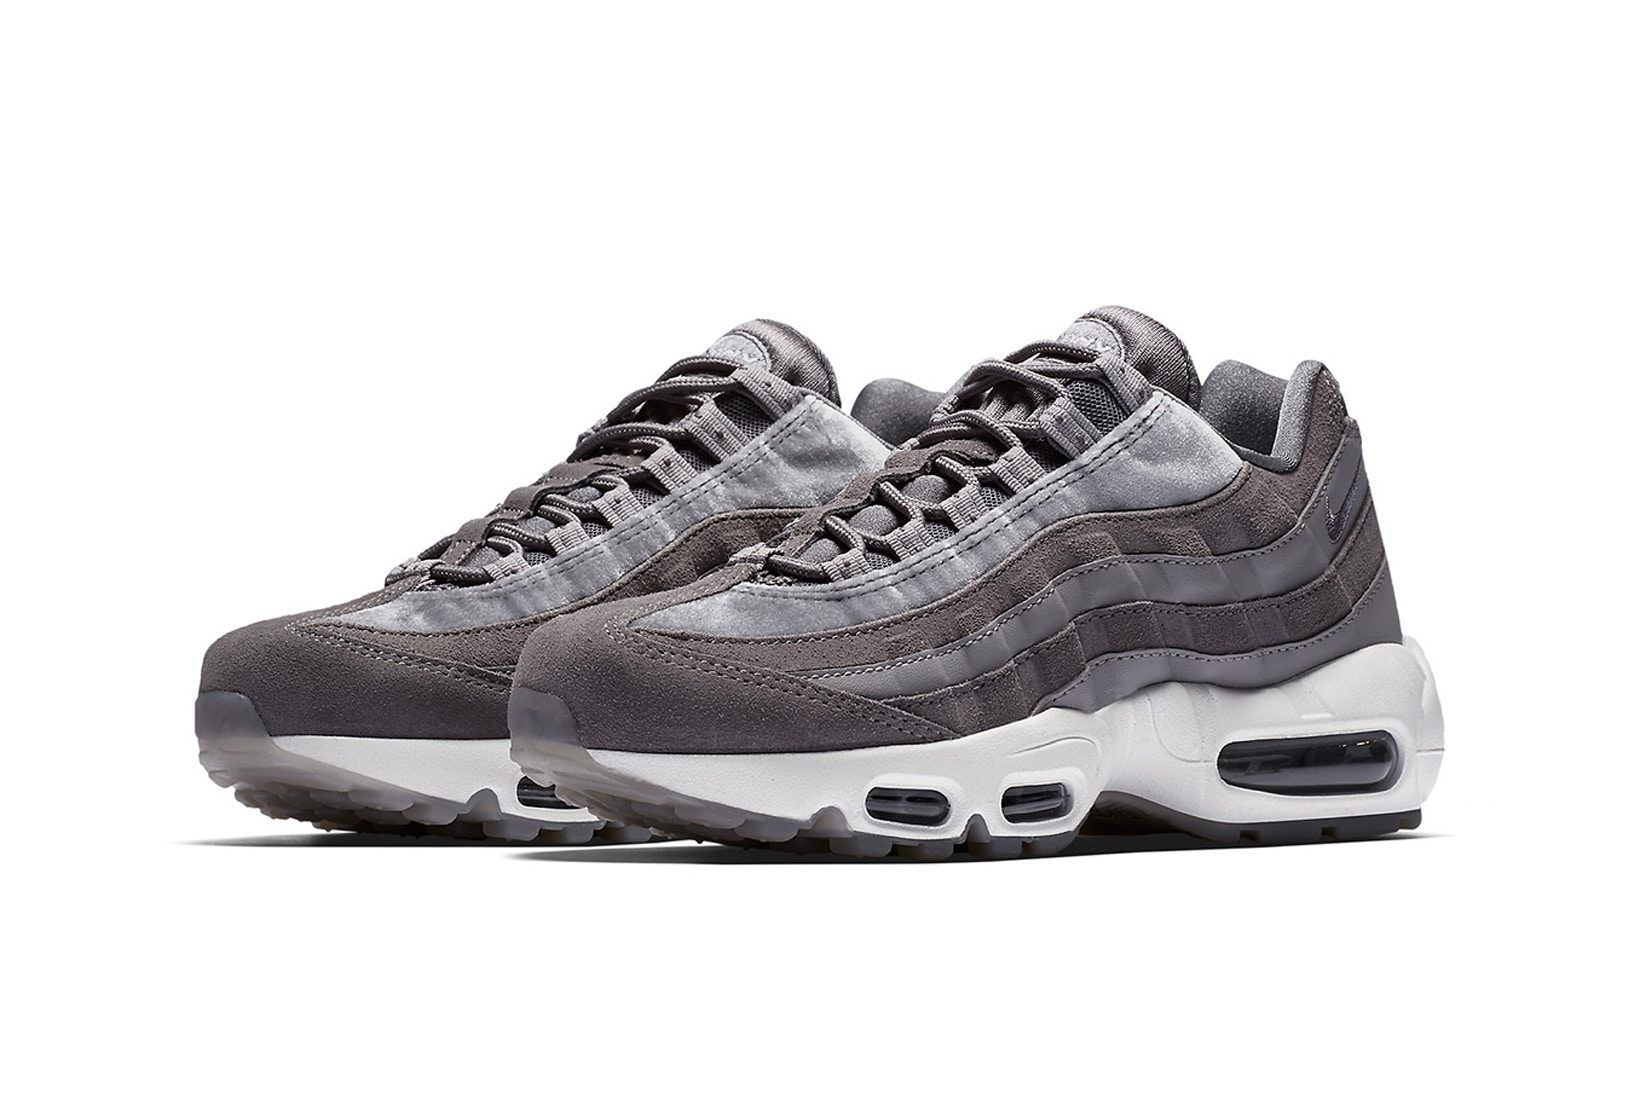 Nike Keeps it Clean with the Air Max 95 'Gunsmoke' | Air max